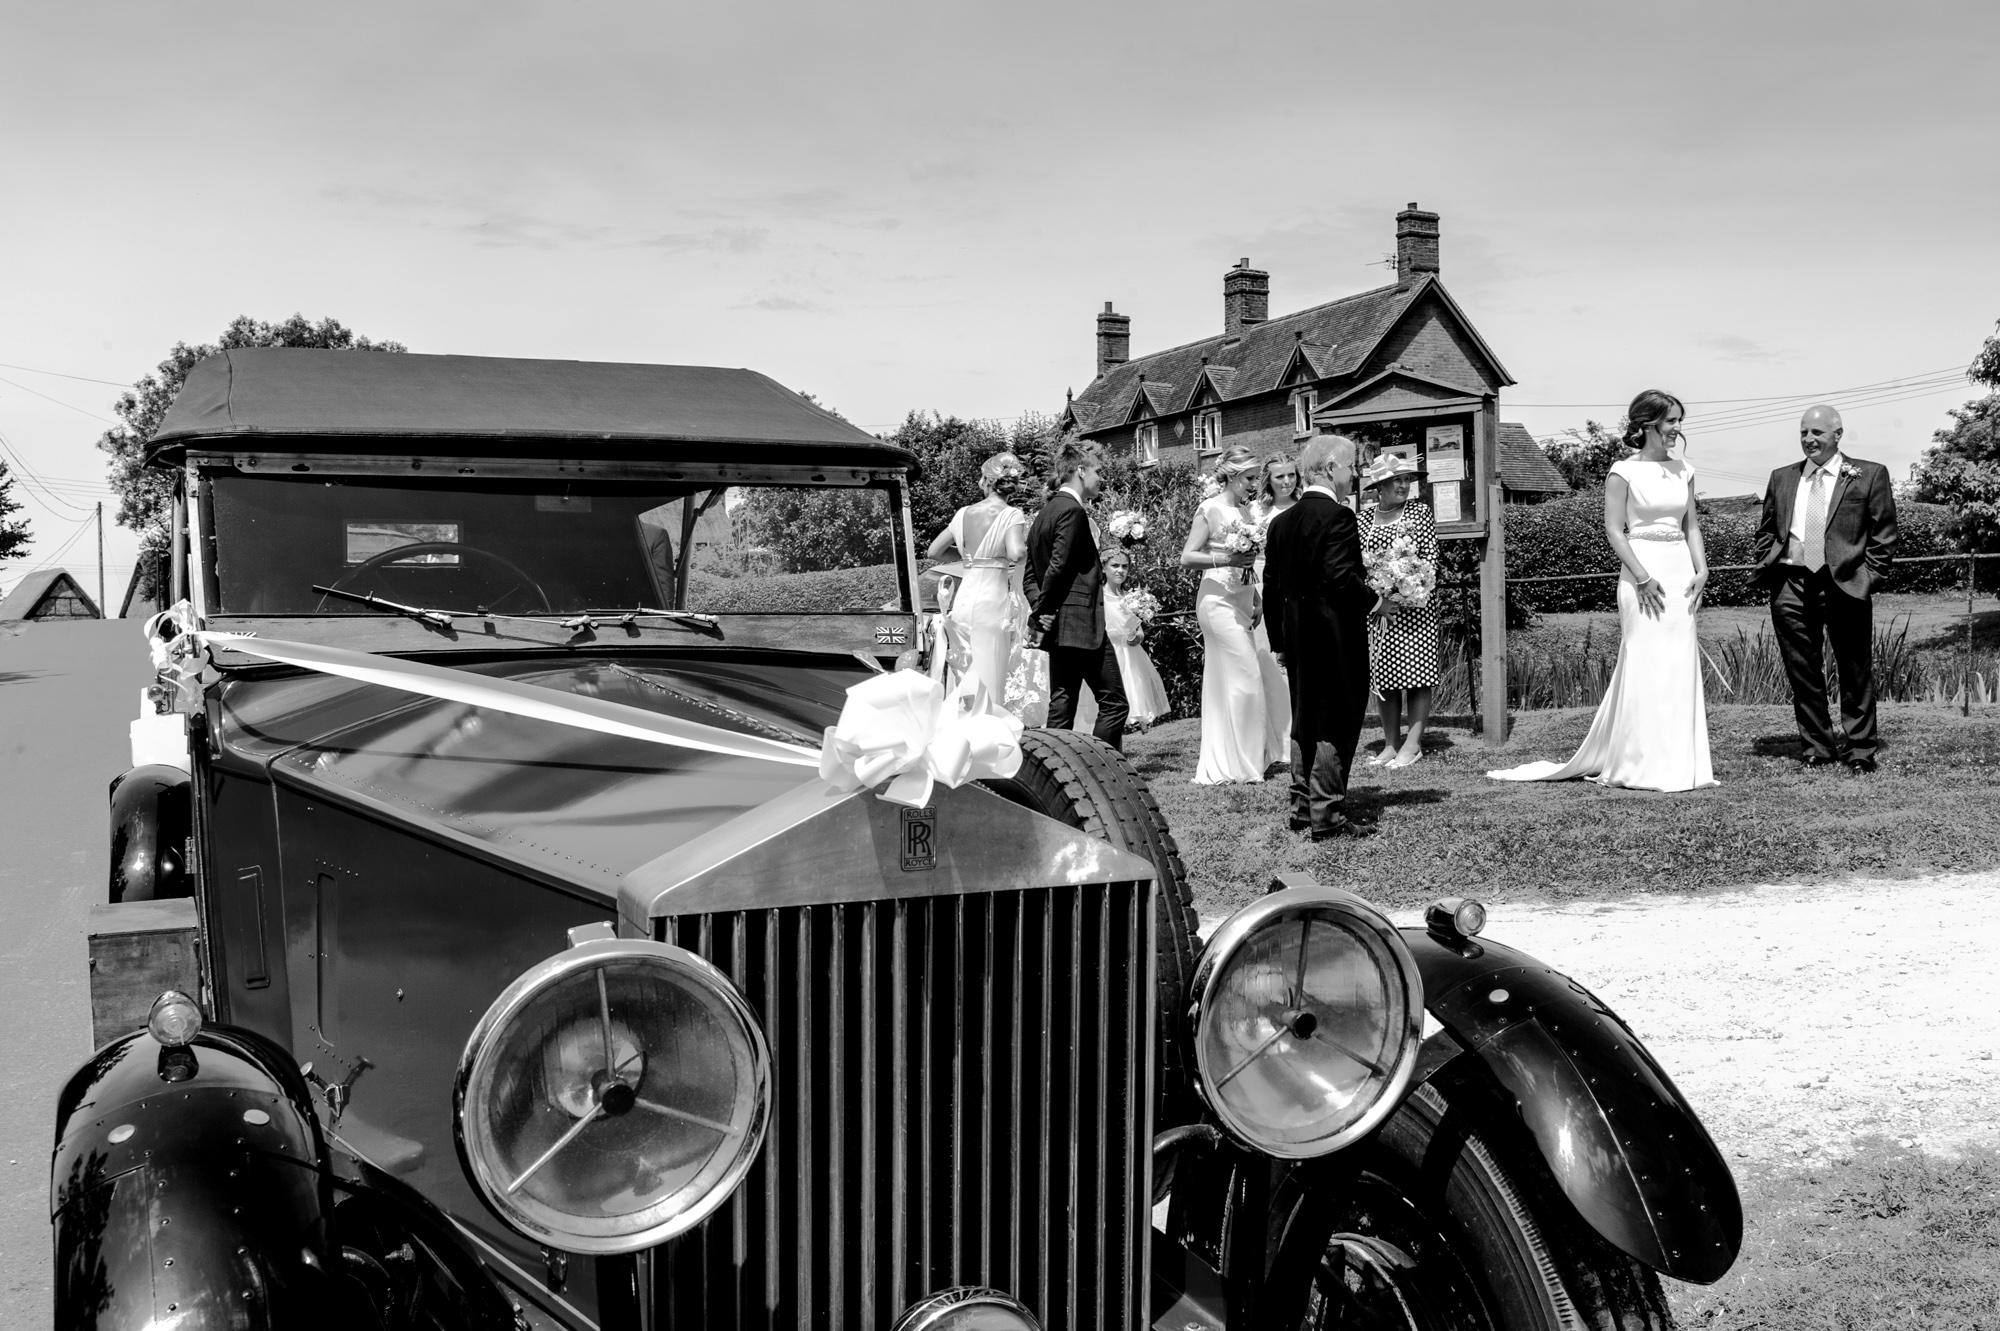 Cotswold Wedding Photography 11.09.188.jpg